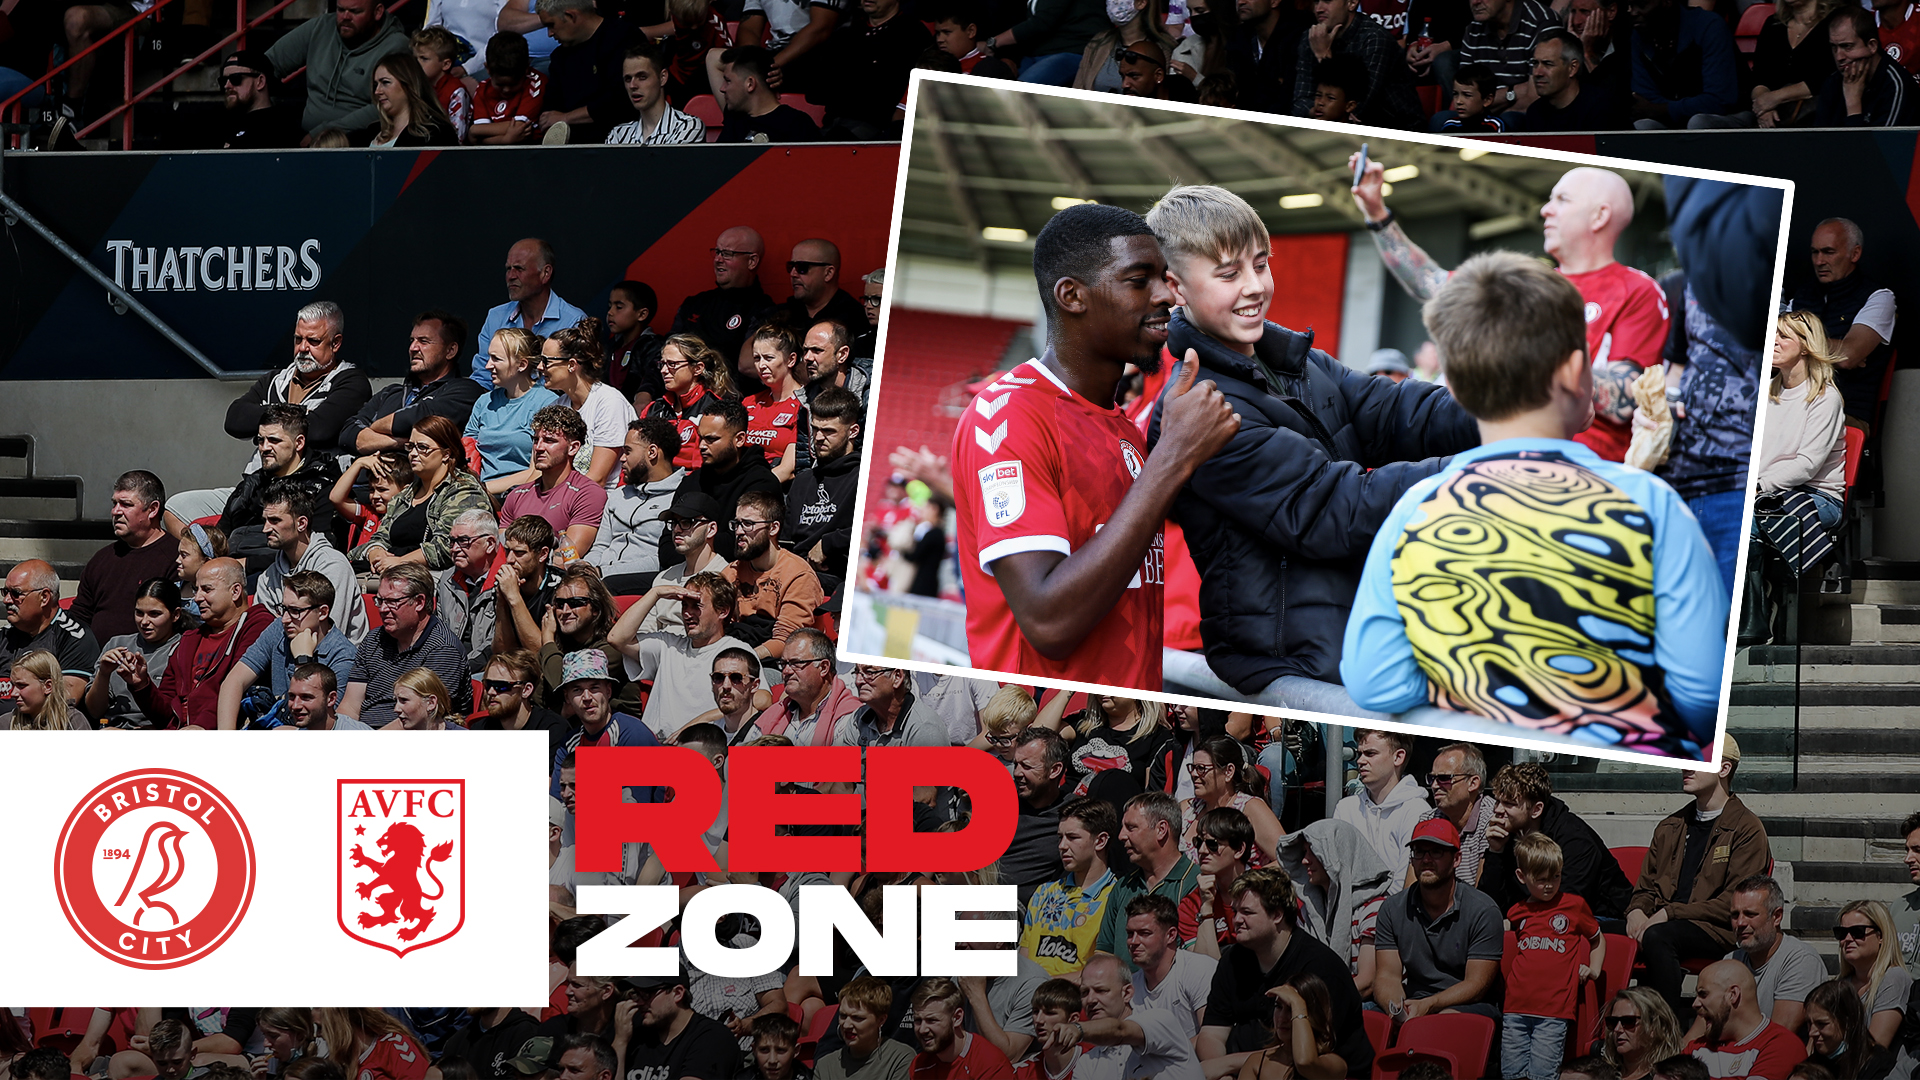 Fans back at Ashton Gate | Behind-the-scenes